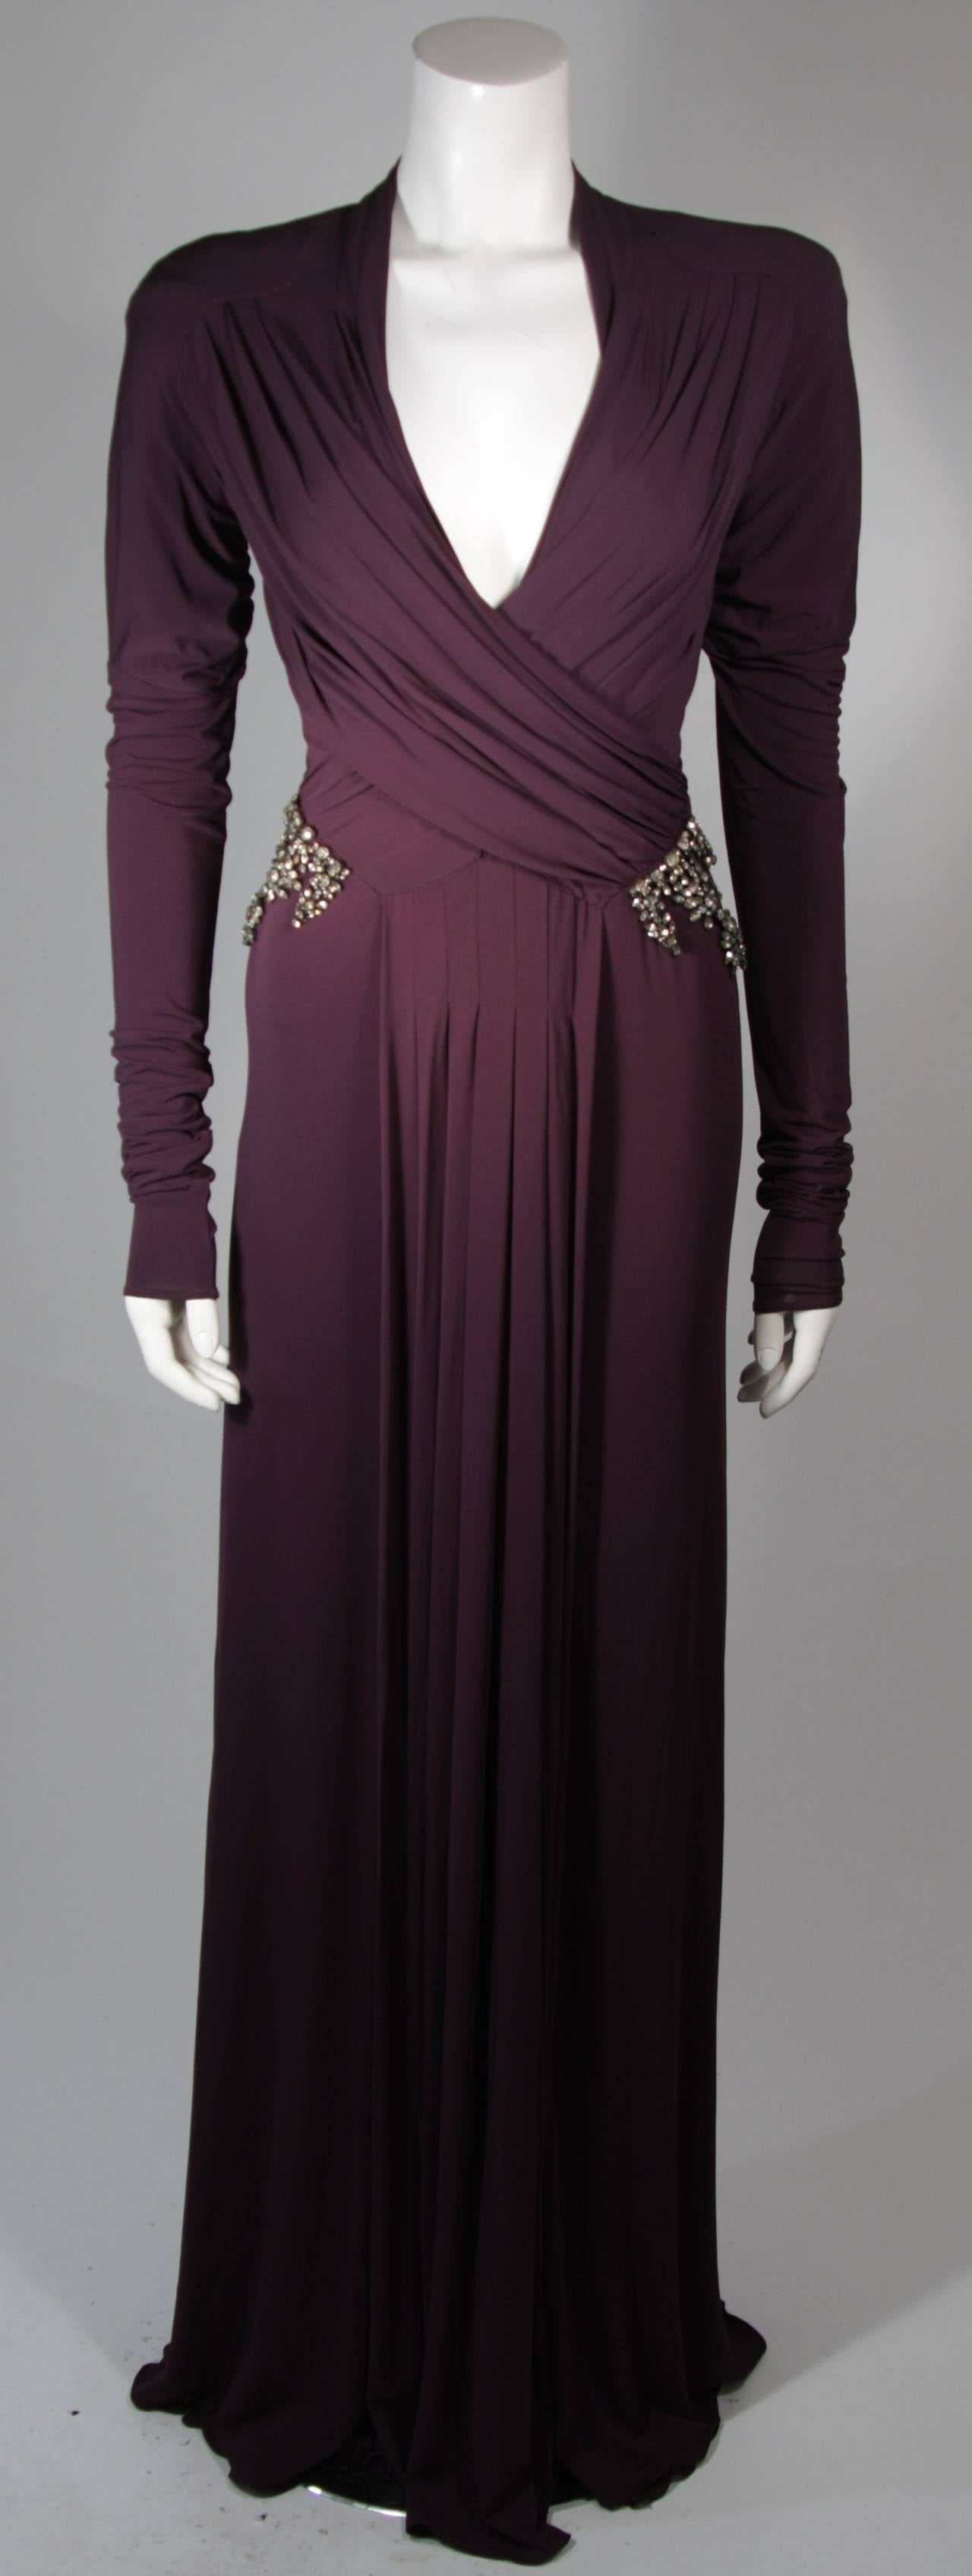 Roberto Cavalli Aubergine Long Sleeve Jersey Gown with Embellishments Size 40 2